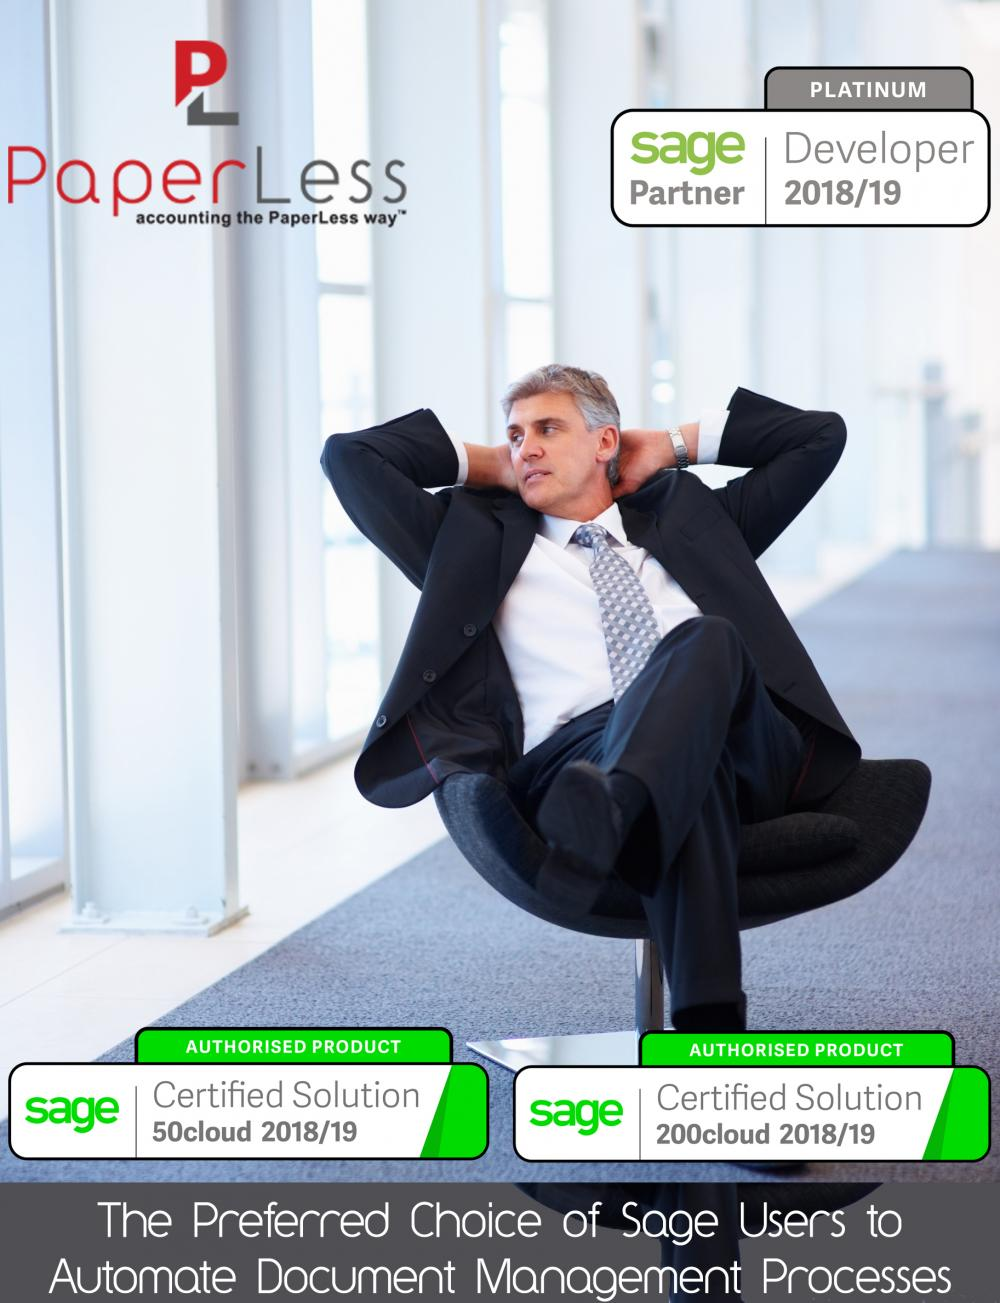 Sage Certified Document Management Software is the top choice of UK CFOs to automate document management processes.